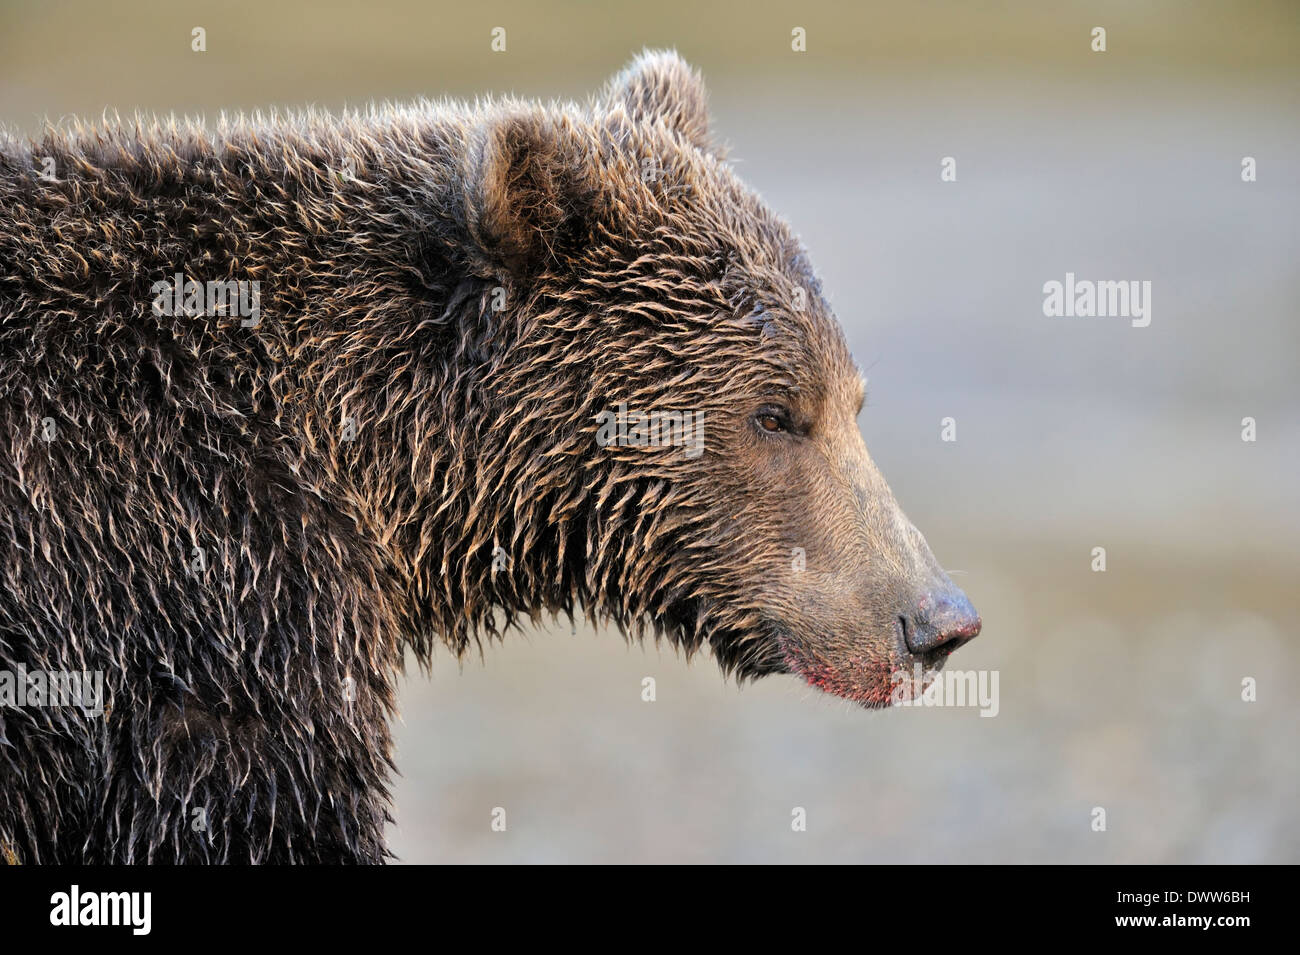 Oso grizzly (Ursus arctos horribilis) vertical. Imagen De Stock